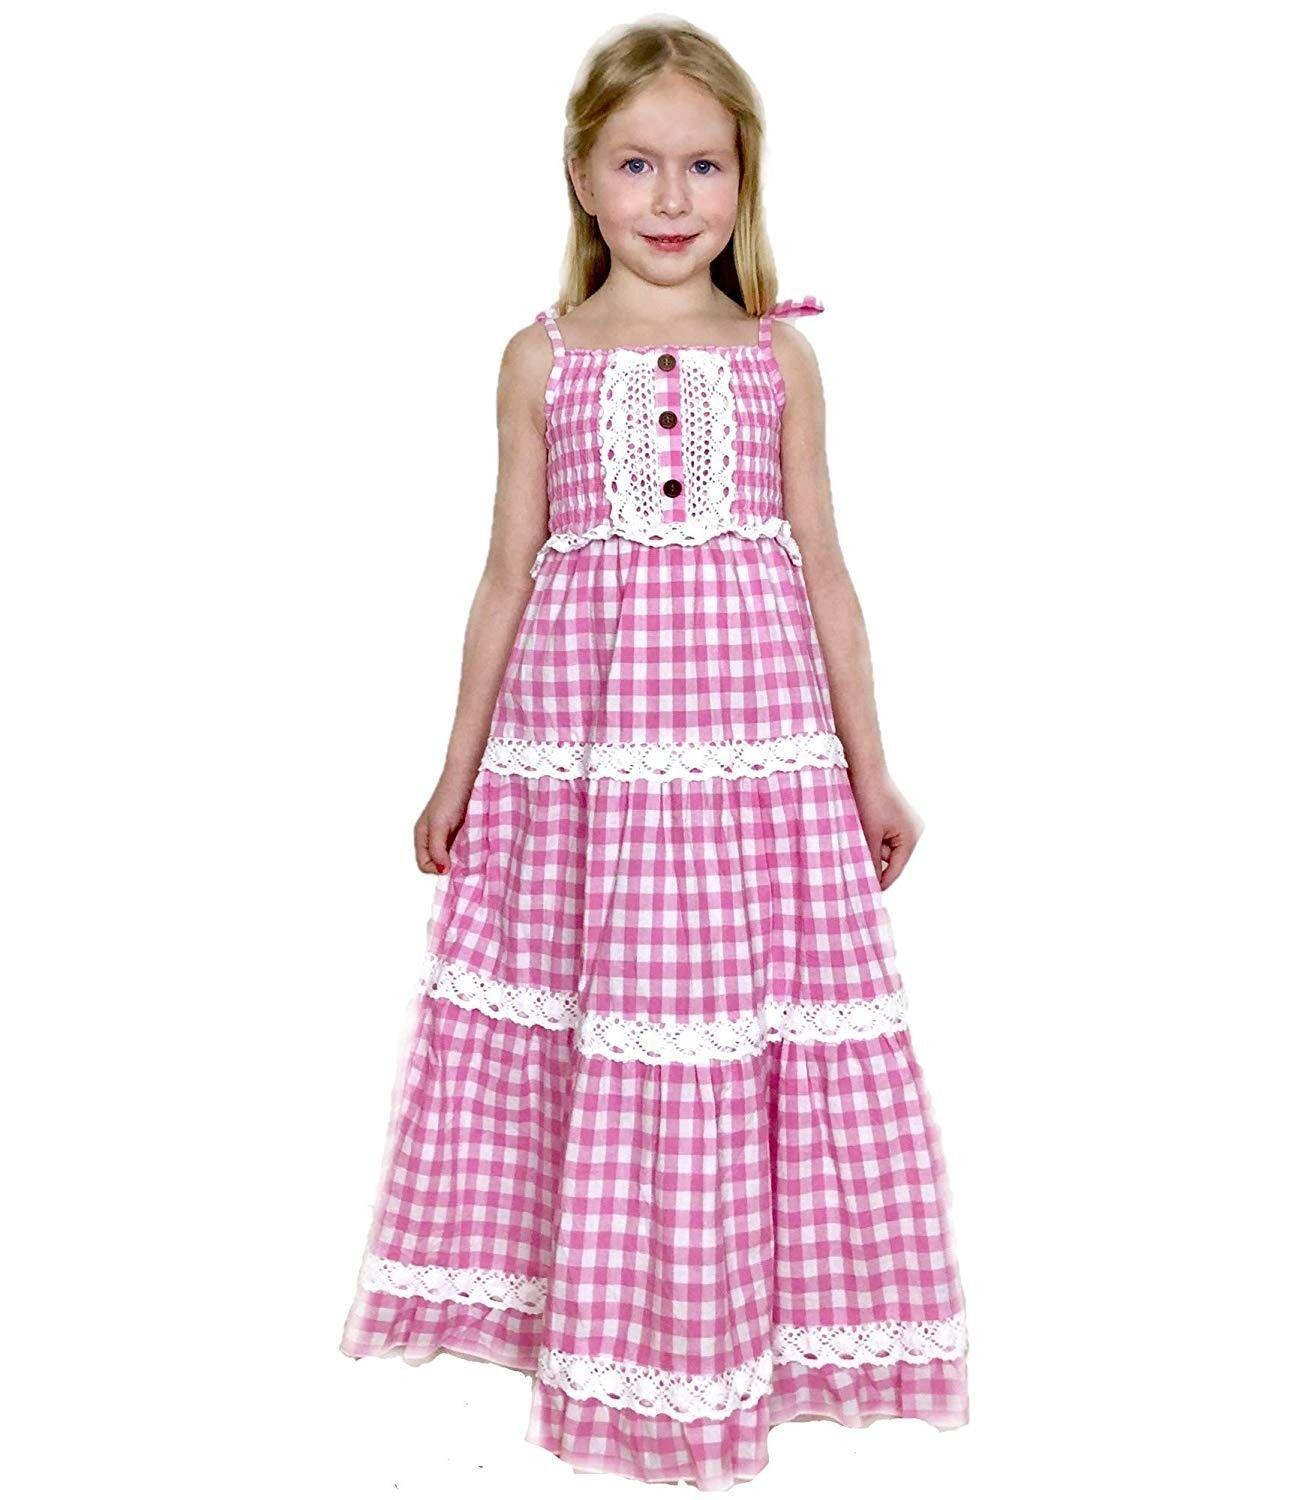 Girl S Pink Gingham Lace Tiered Maxi Dress Sizes 3t 4t Or 5t Pink C918m8xoc7i Tiered Maxi Dress Maxi Dress Girls Casual Dresses [ 1500 x 1306 Pixel ]